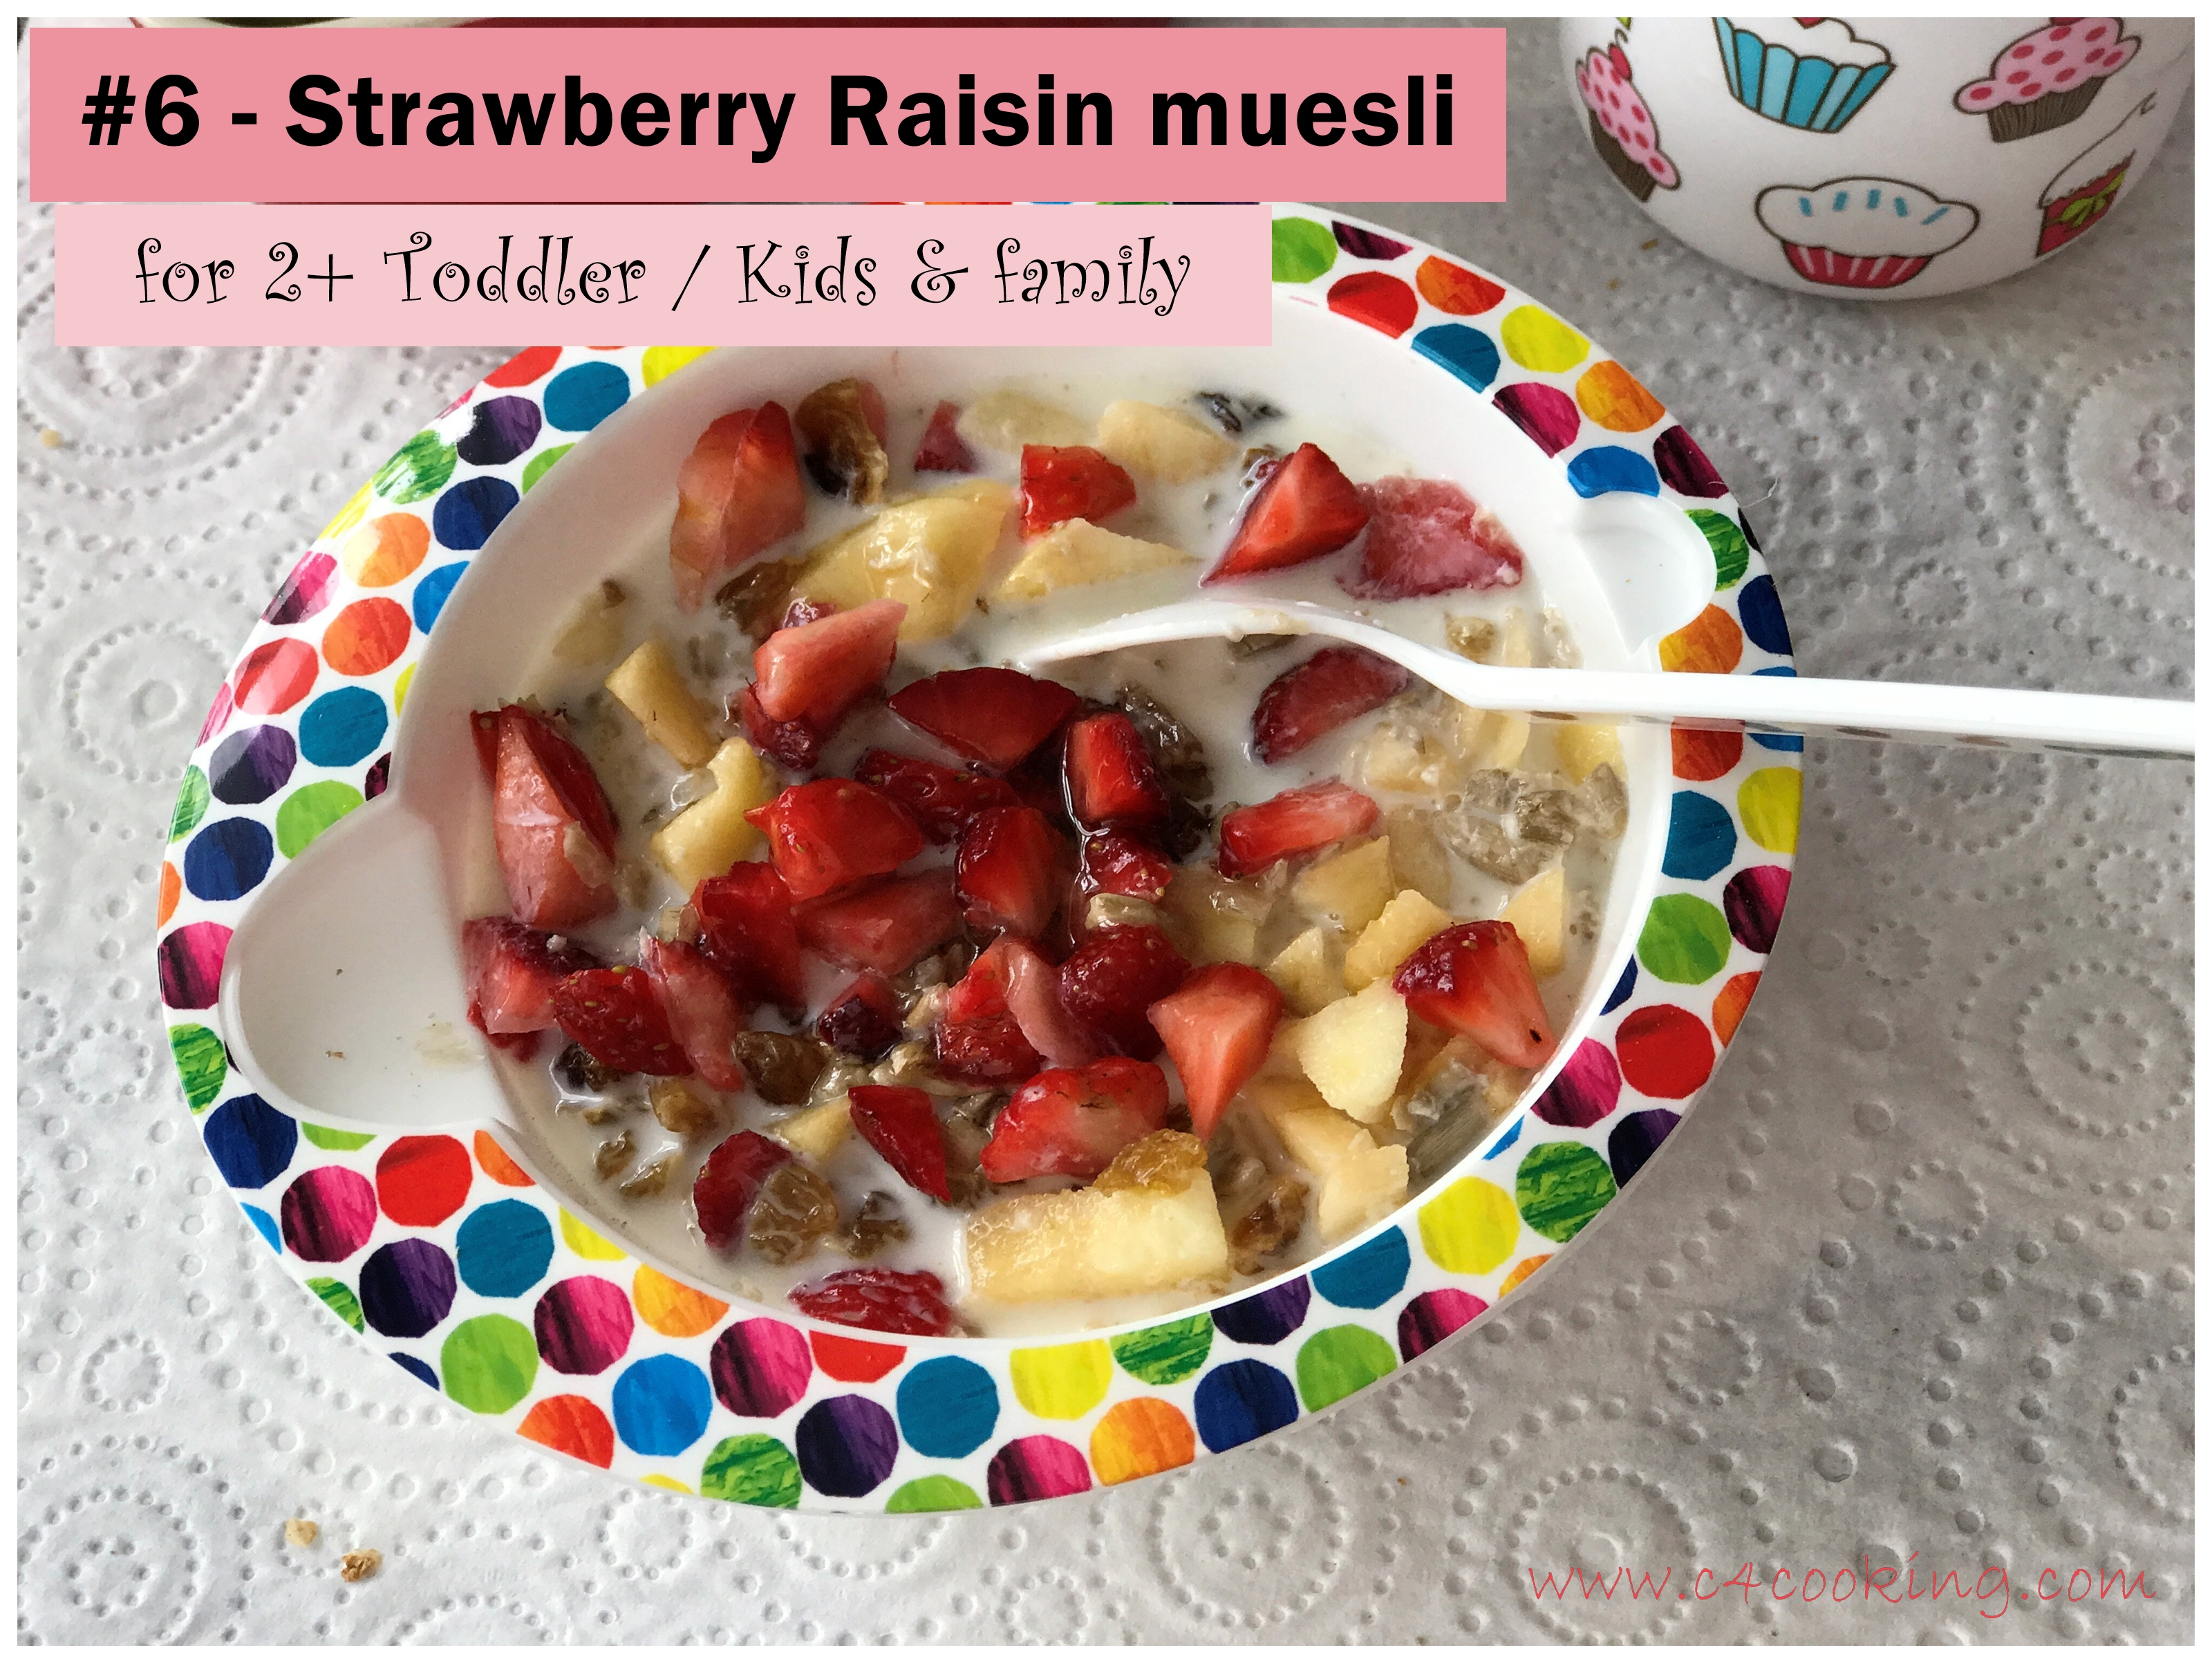 Strawberry raisin muesli recipe, c4cooking.com